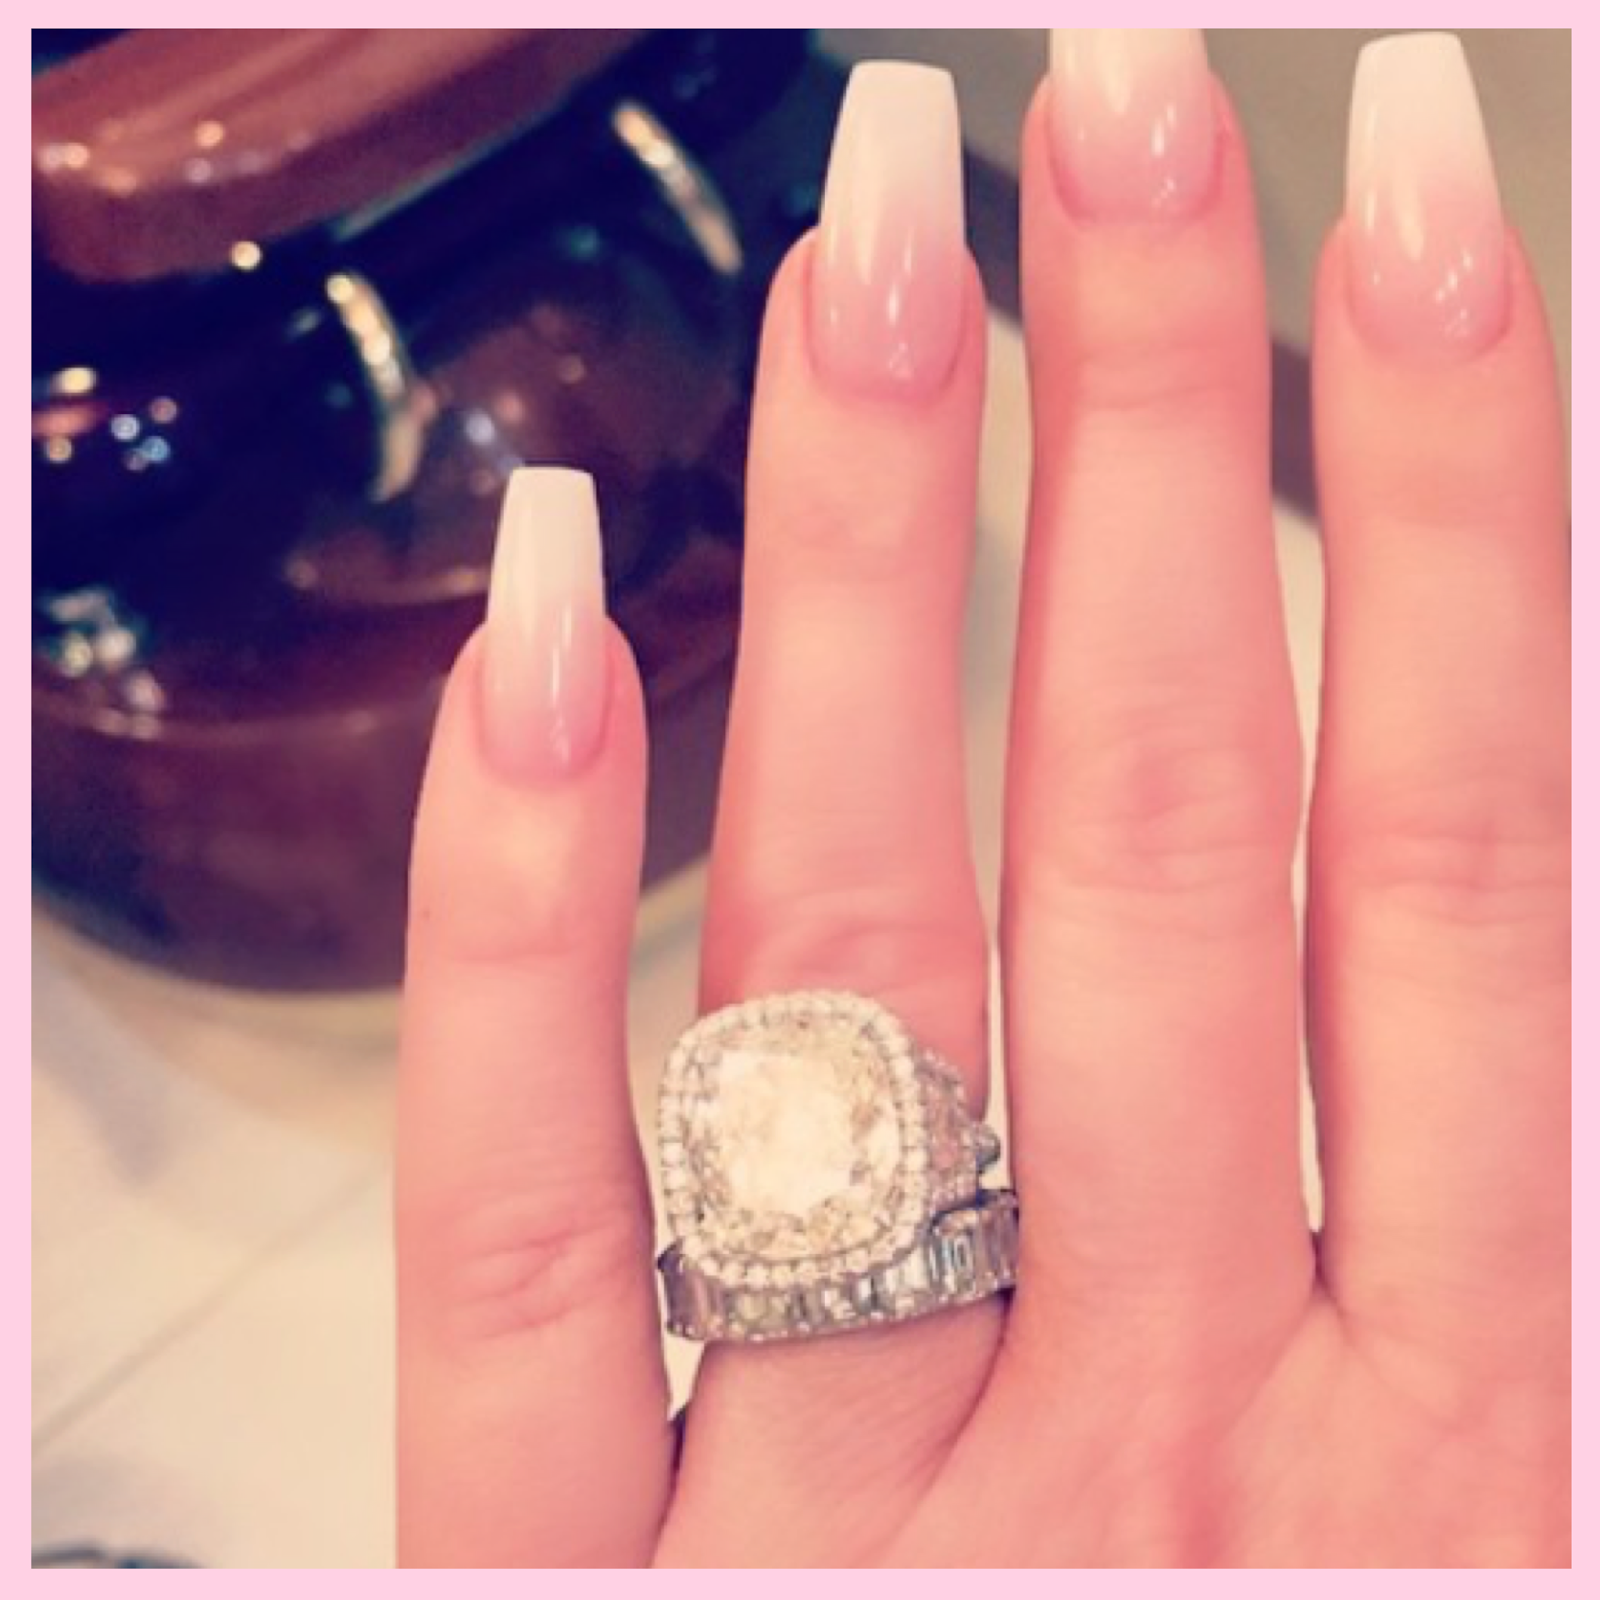 Julers Row: Celebrity Engagement Ring Recap, Kim Zolciak Biermann ...